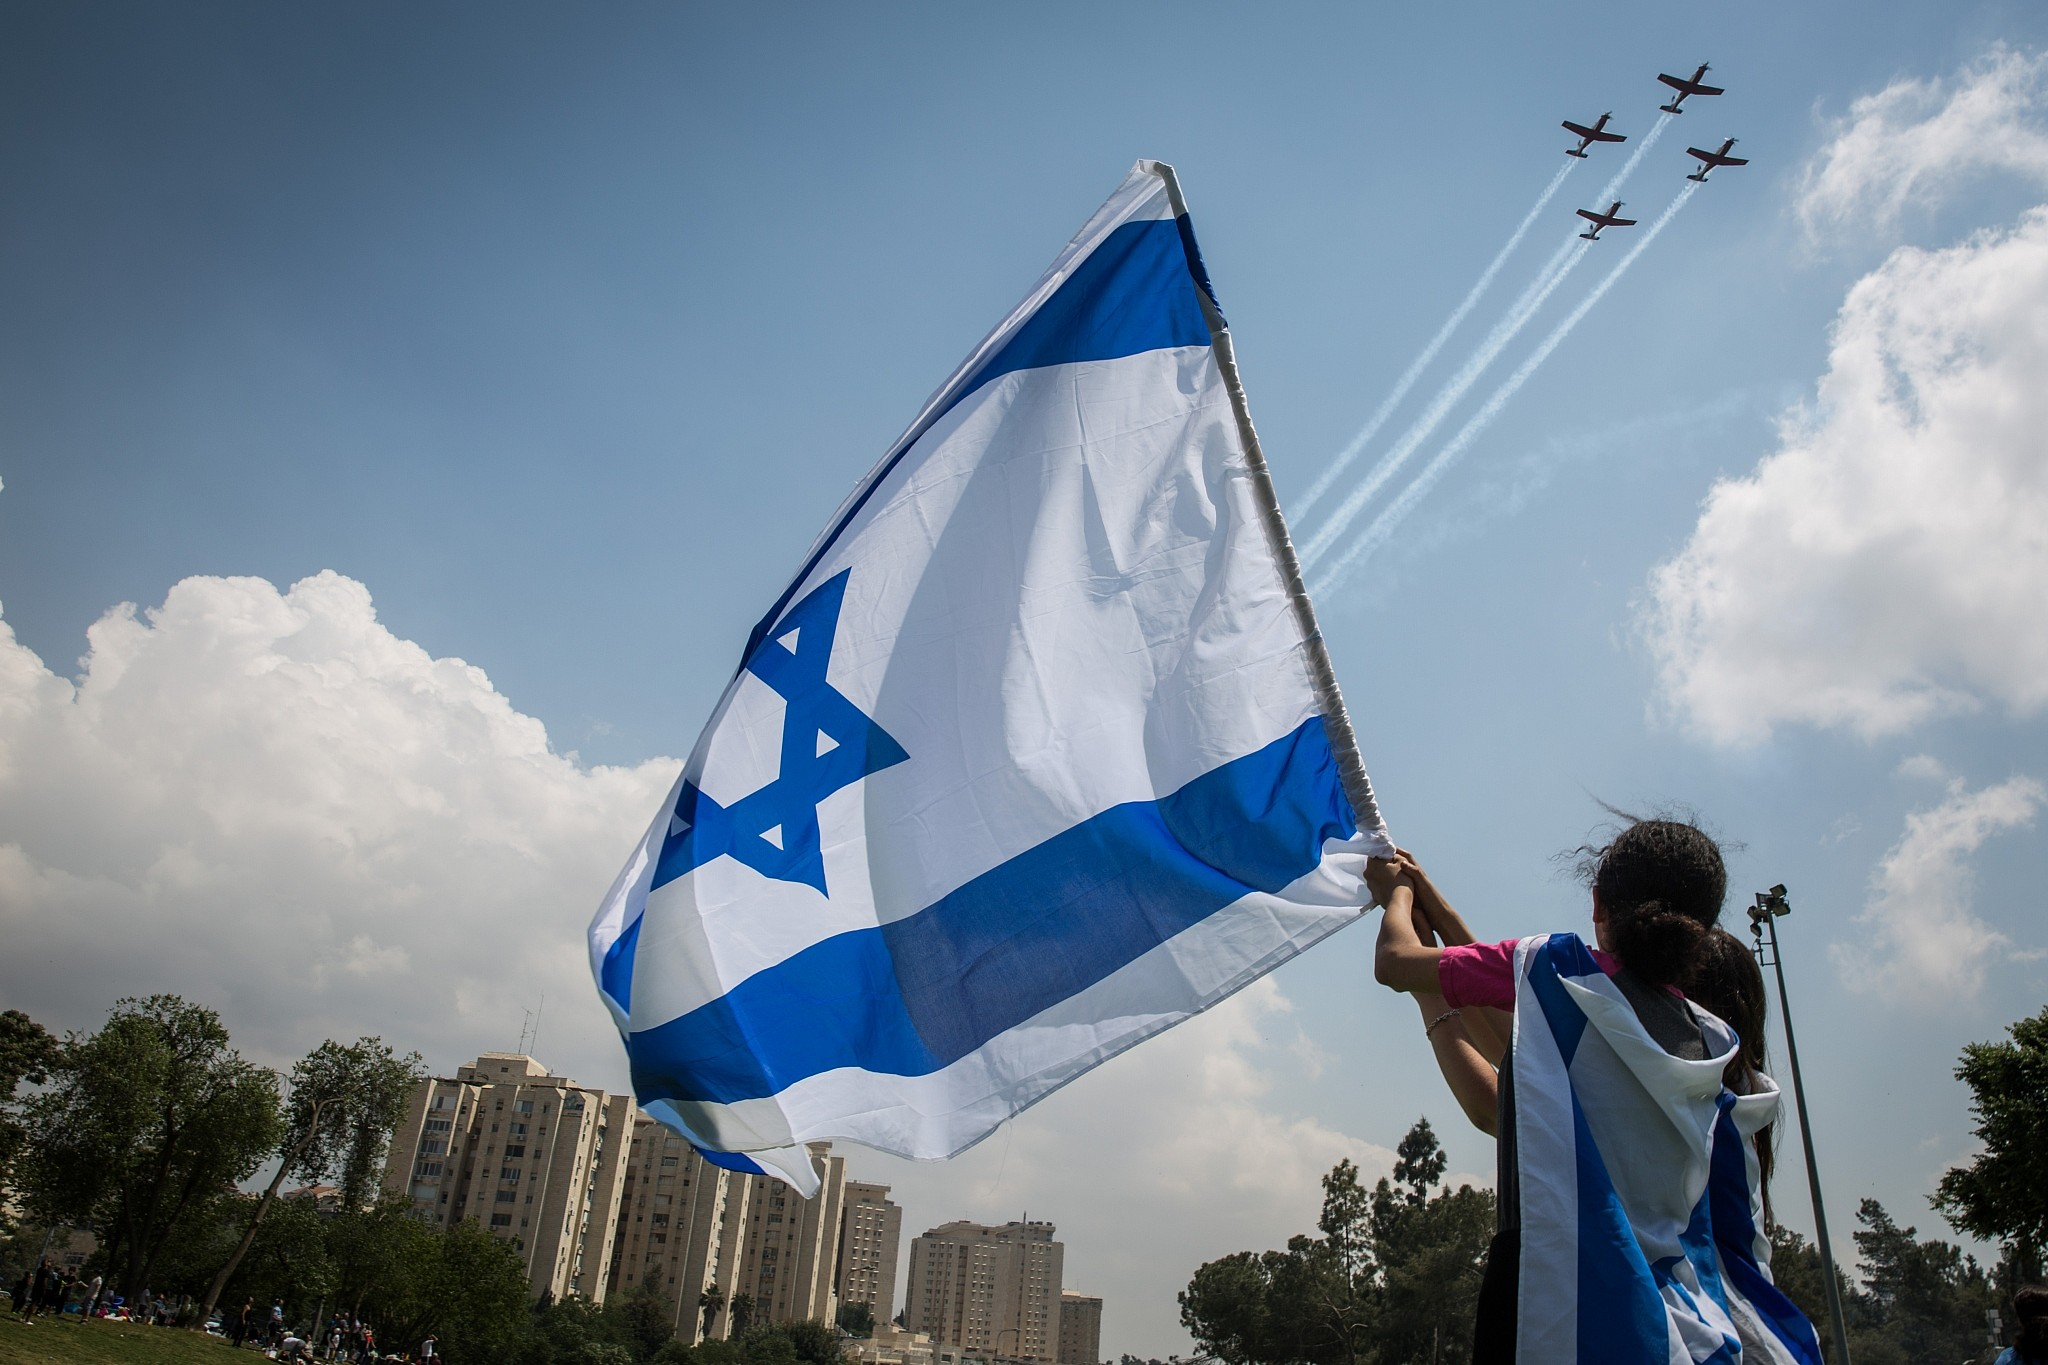 Statement by the Prime Minister on Israel Independence Day